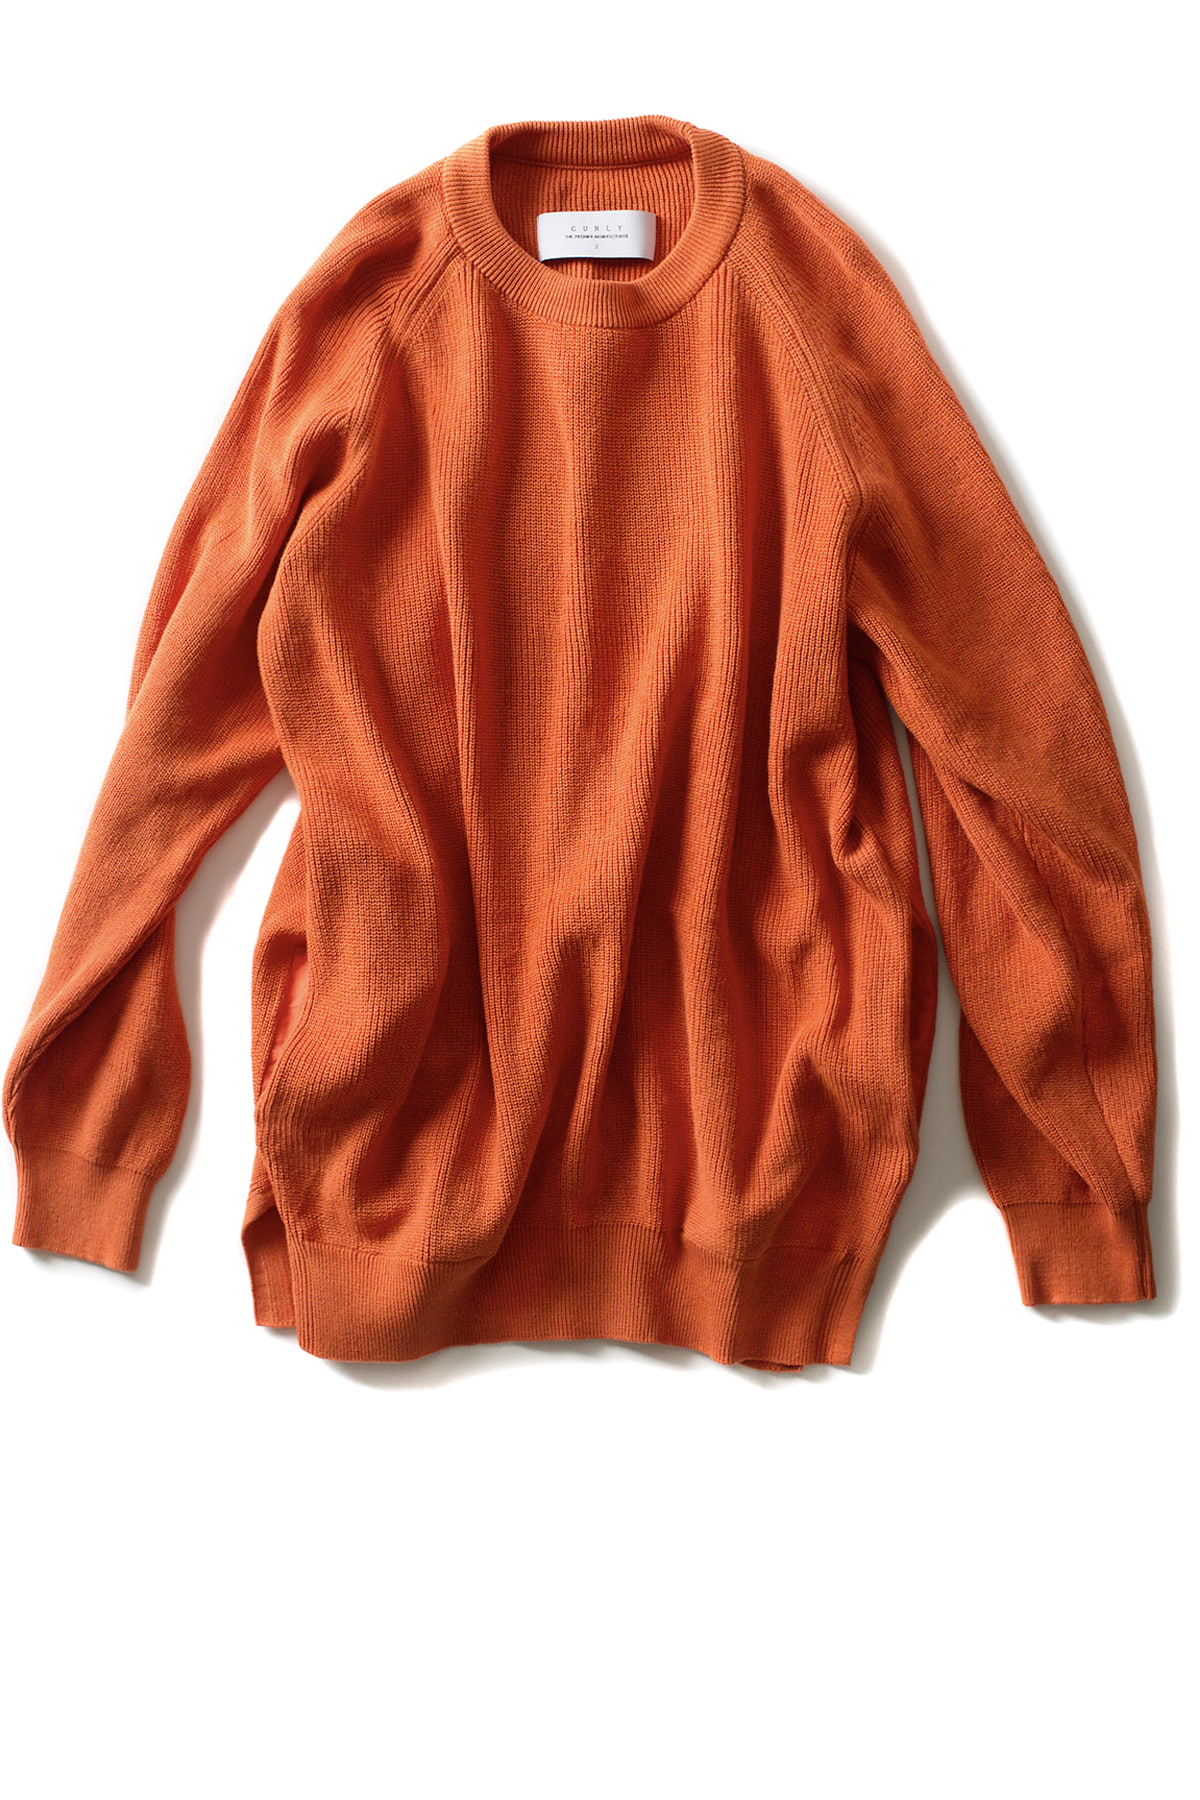 Curly : Assembly Crew Knit (Orange)